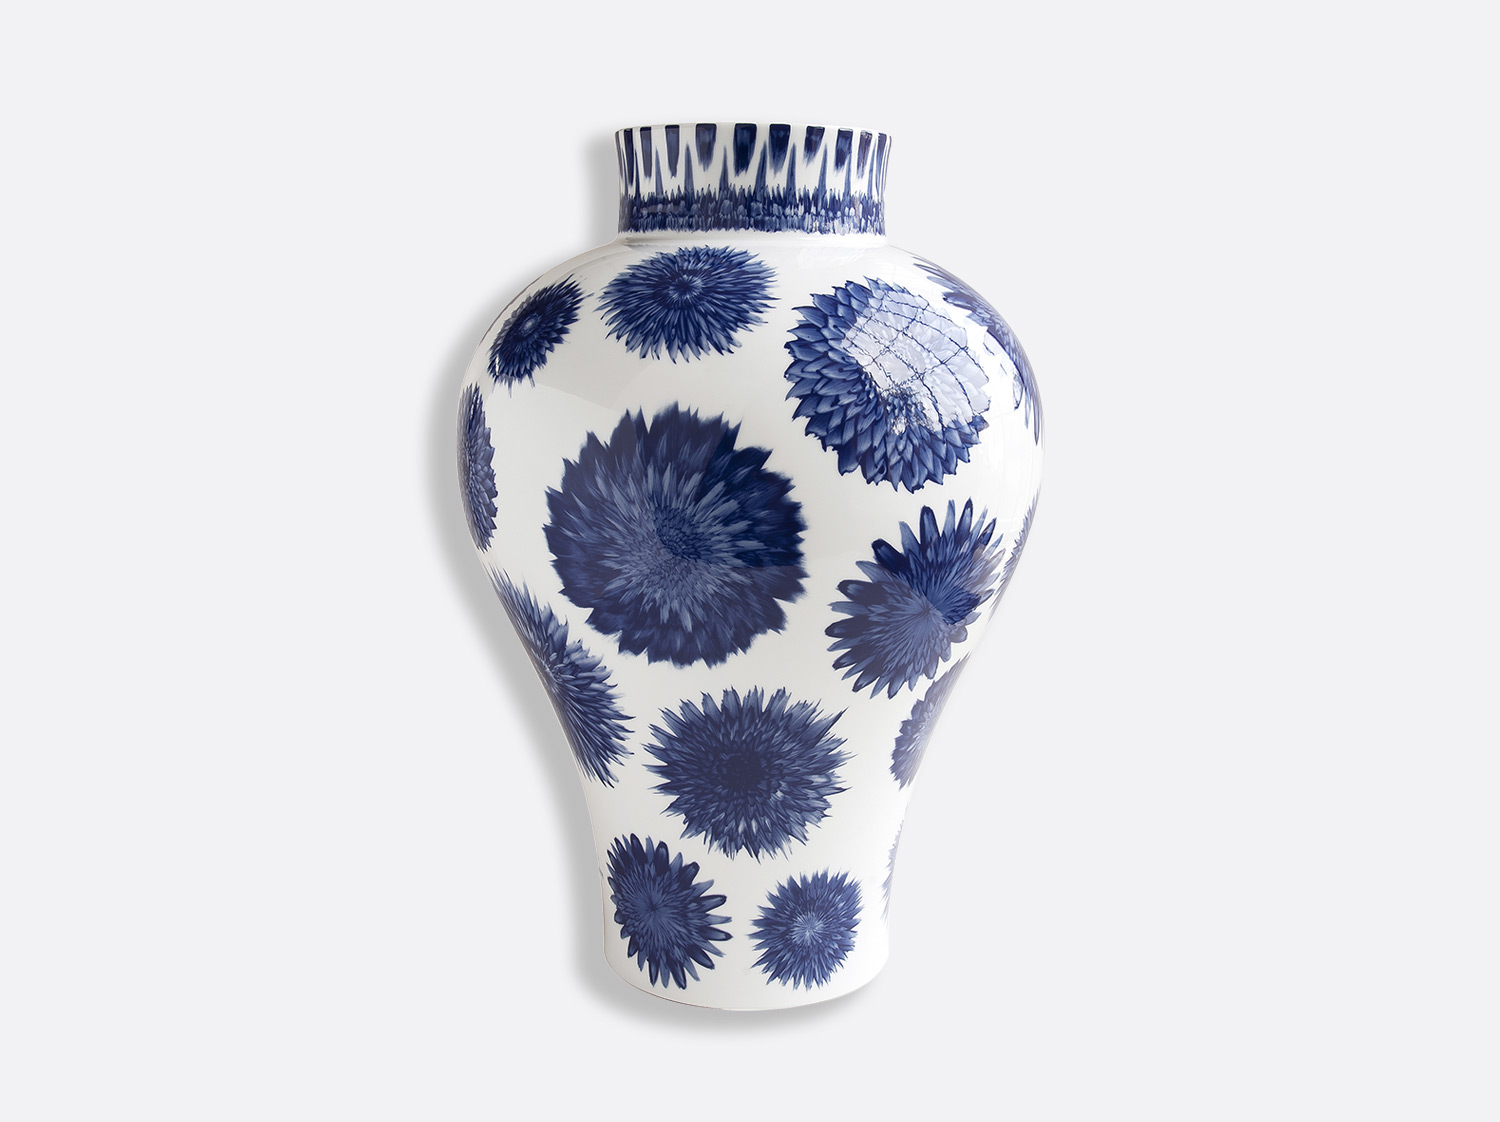 China Super Bloom vase H. 46 cm of the collection IN BLOOM - Zemer Peled | Bernardaud